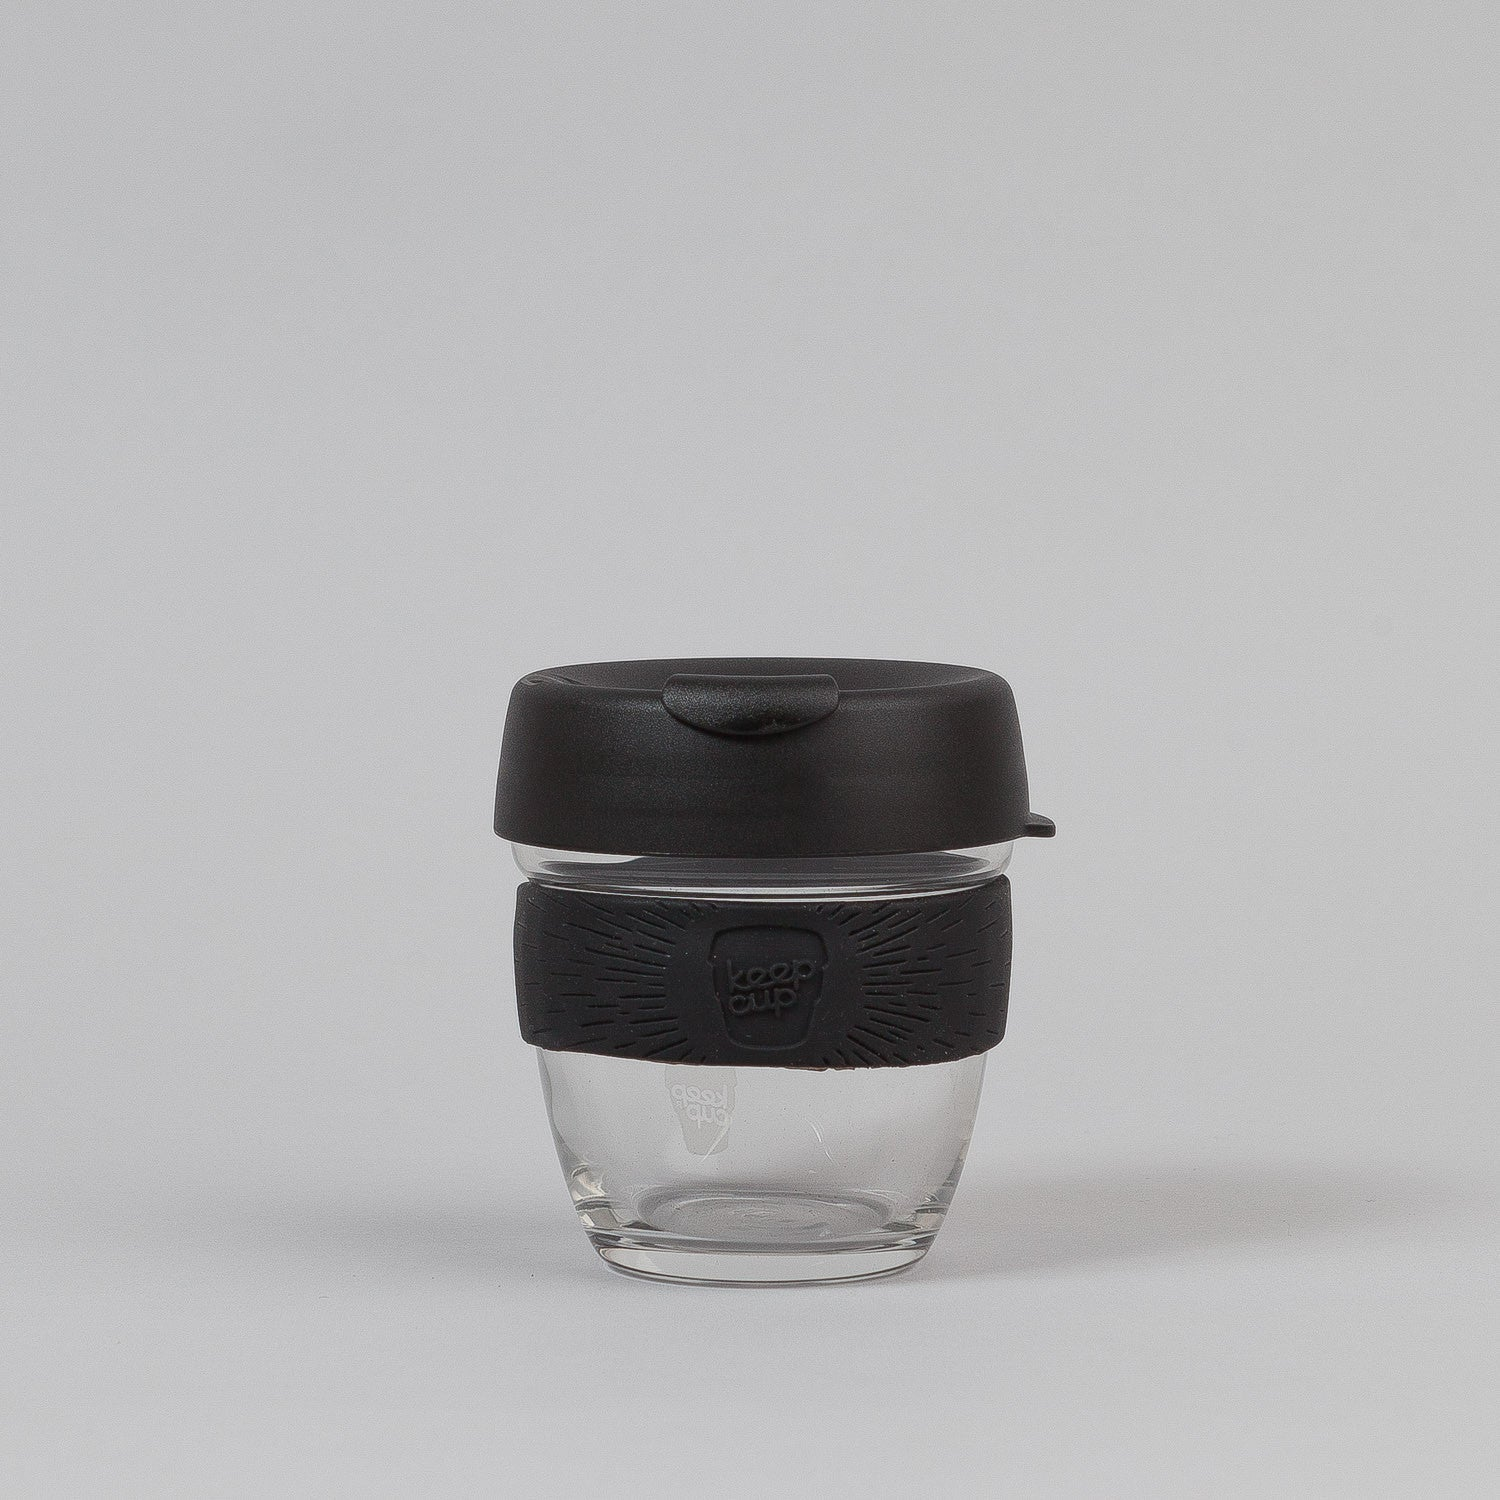 KeepCup Metal 8oz Small Glass Coffee Cup - Black